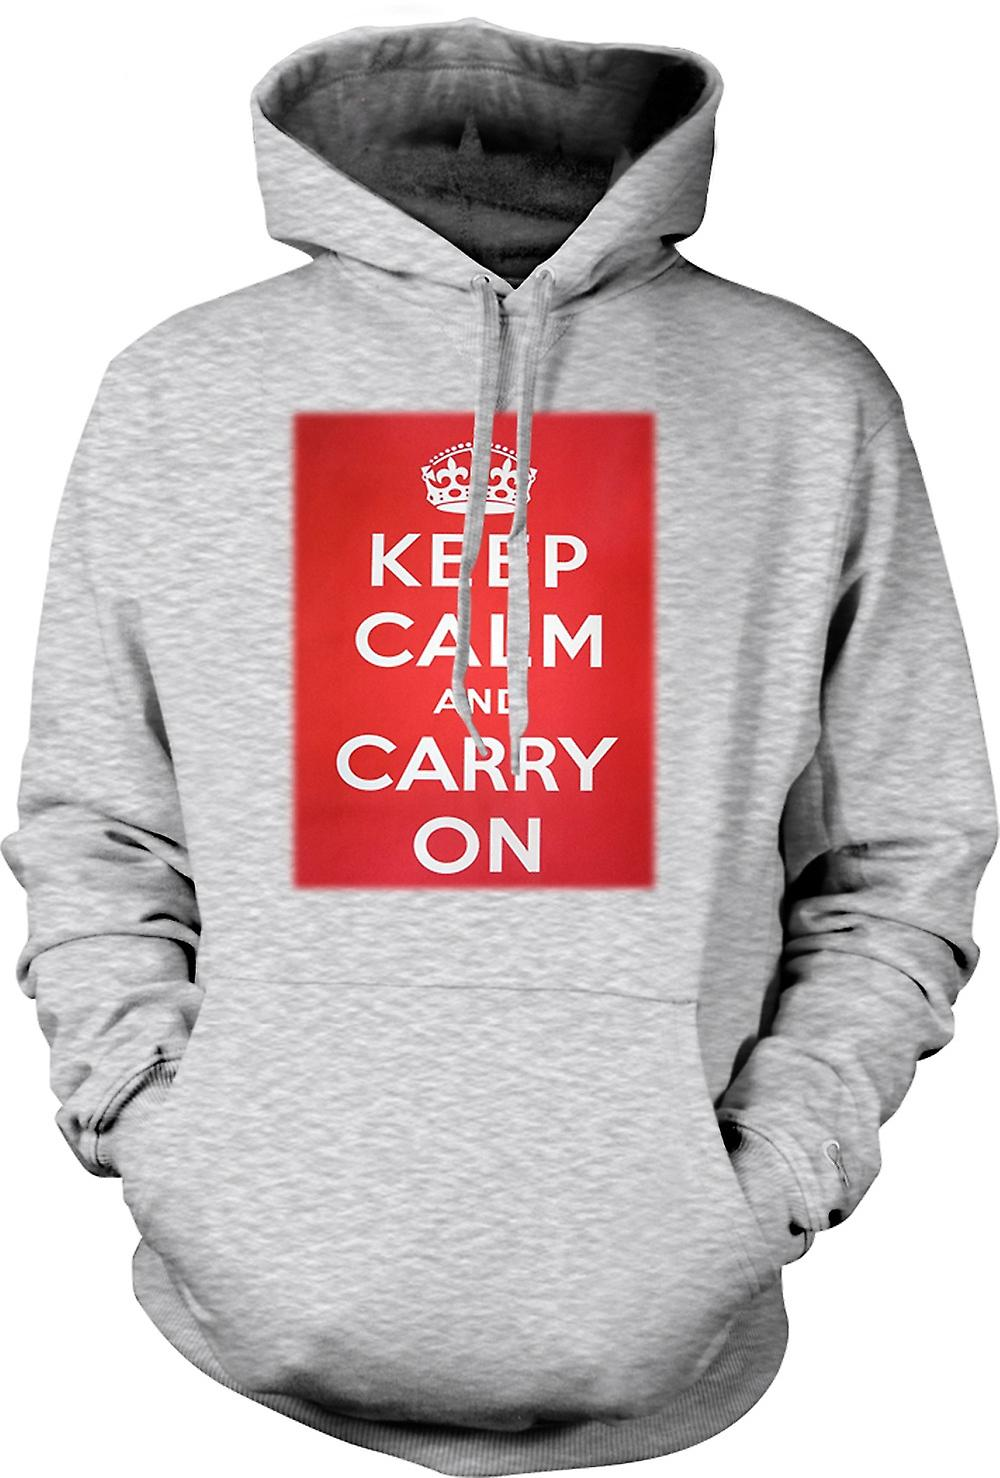 Mens Hoodie - Keep Calm And Carry On